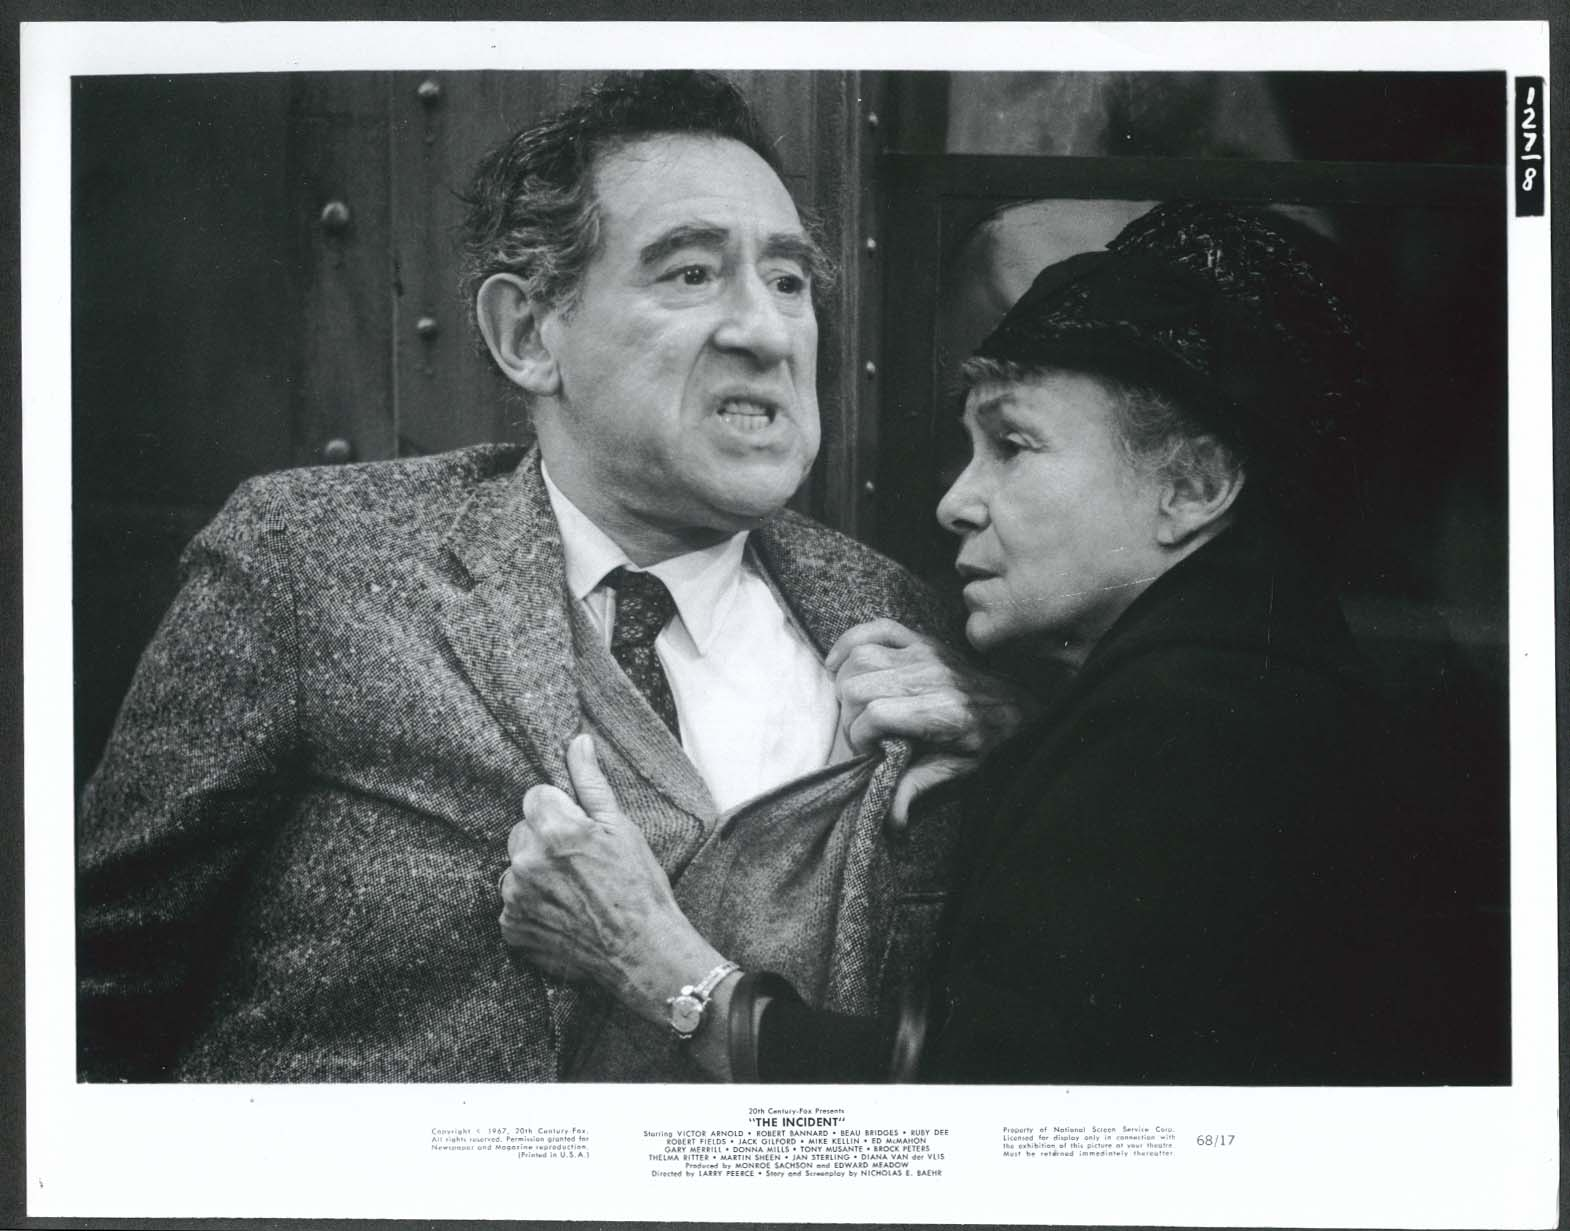 Jack Gilford Thelma Ritter The Incident 8x10 photo #2 1967